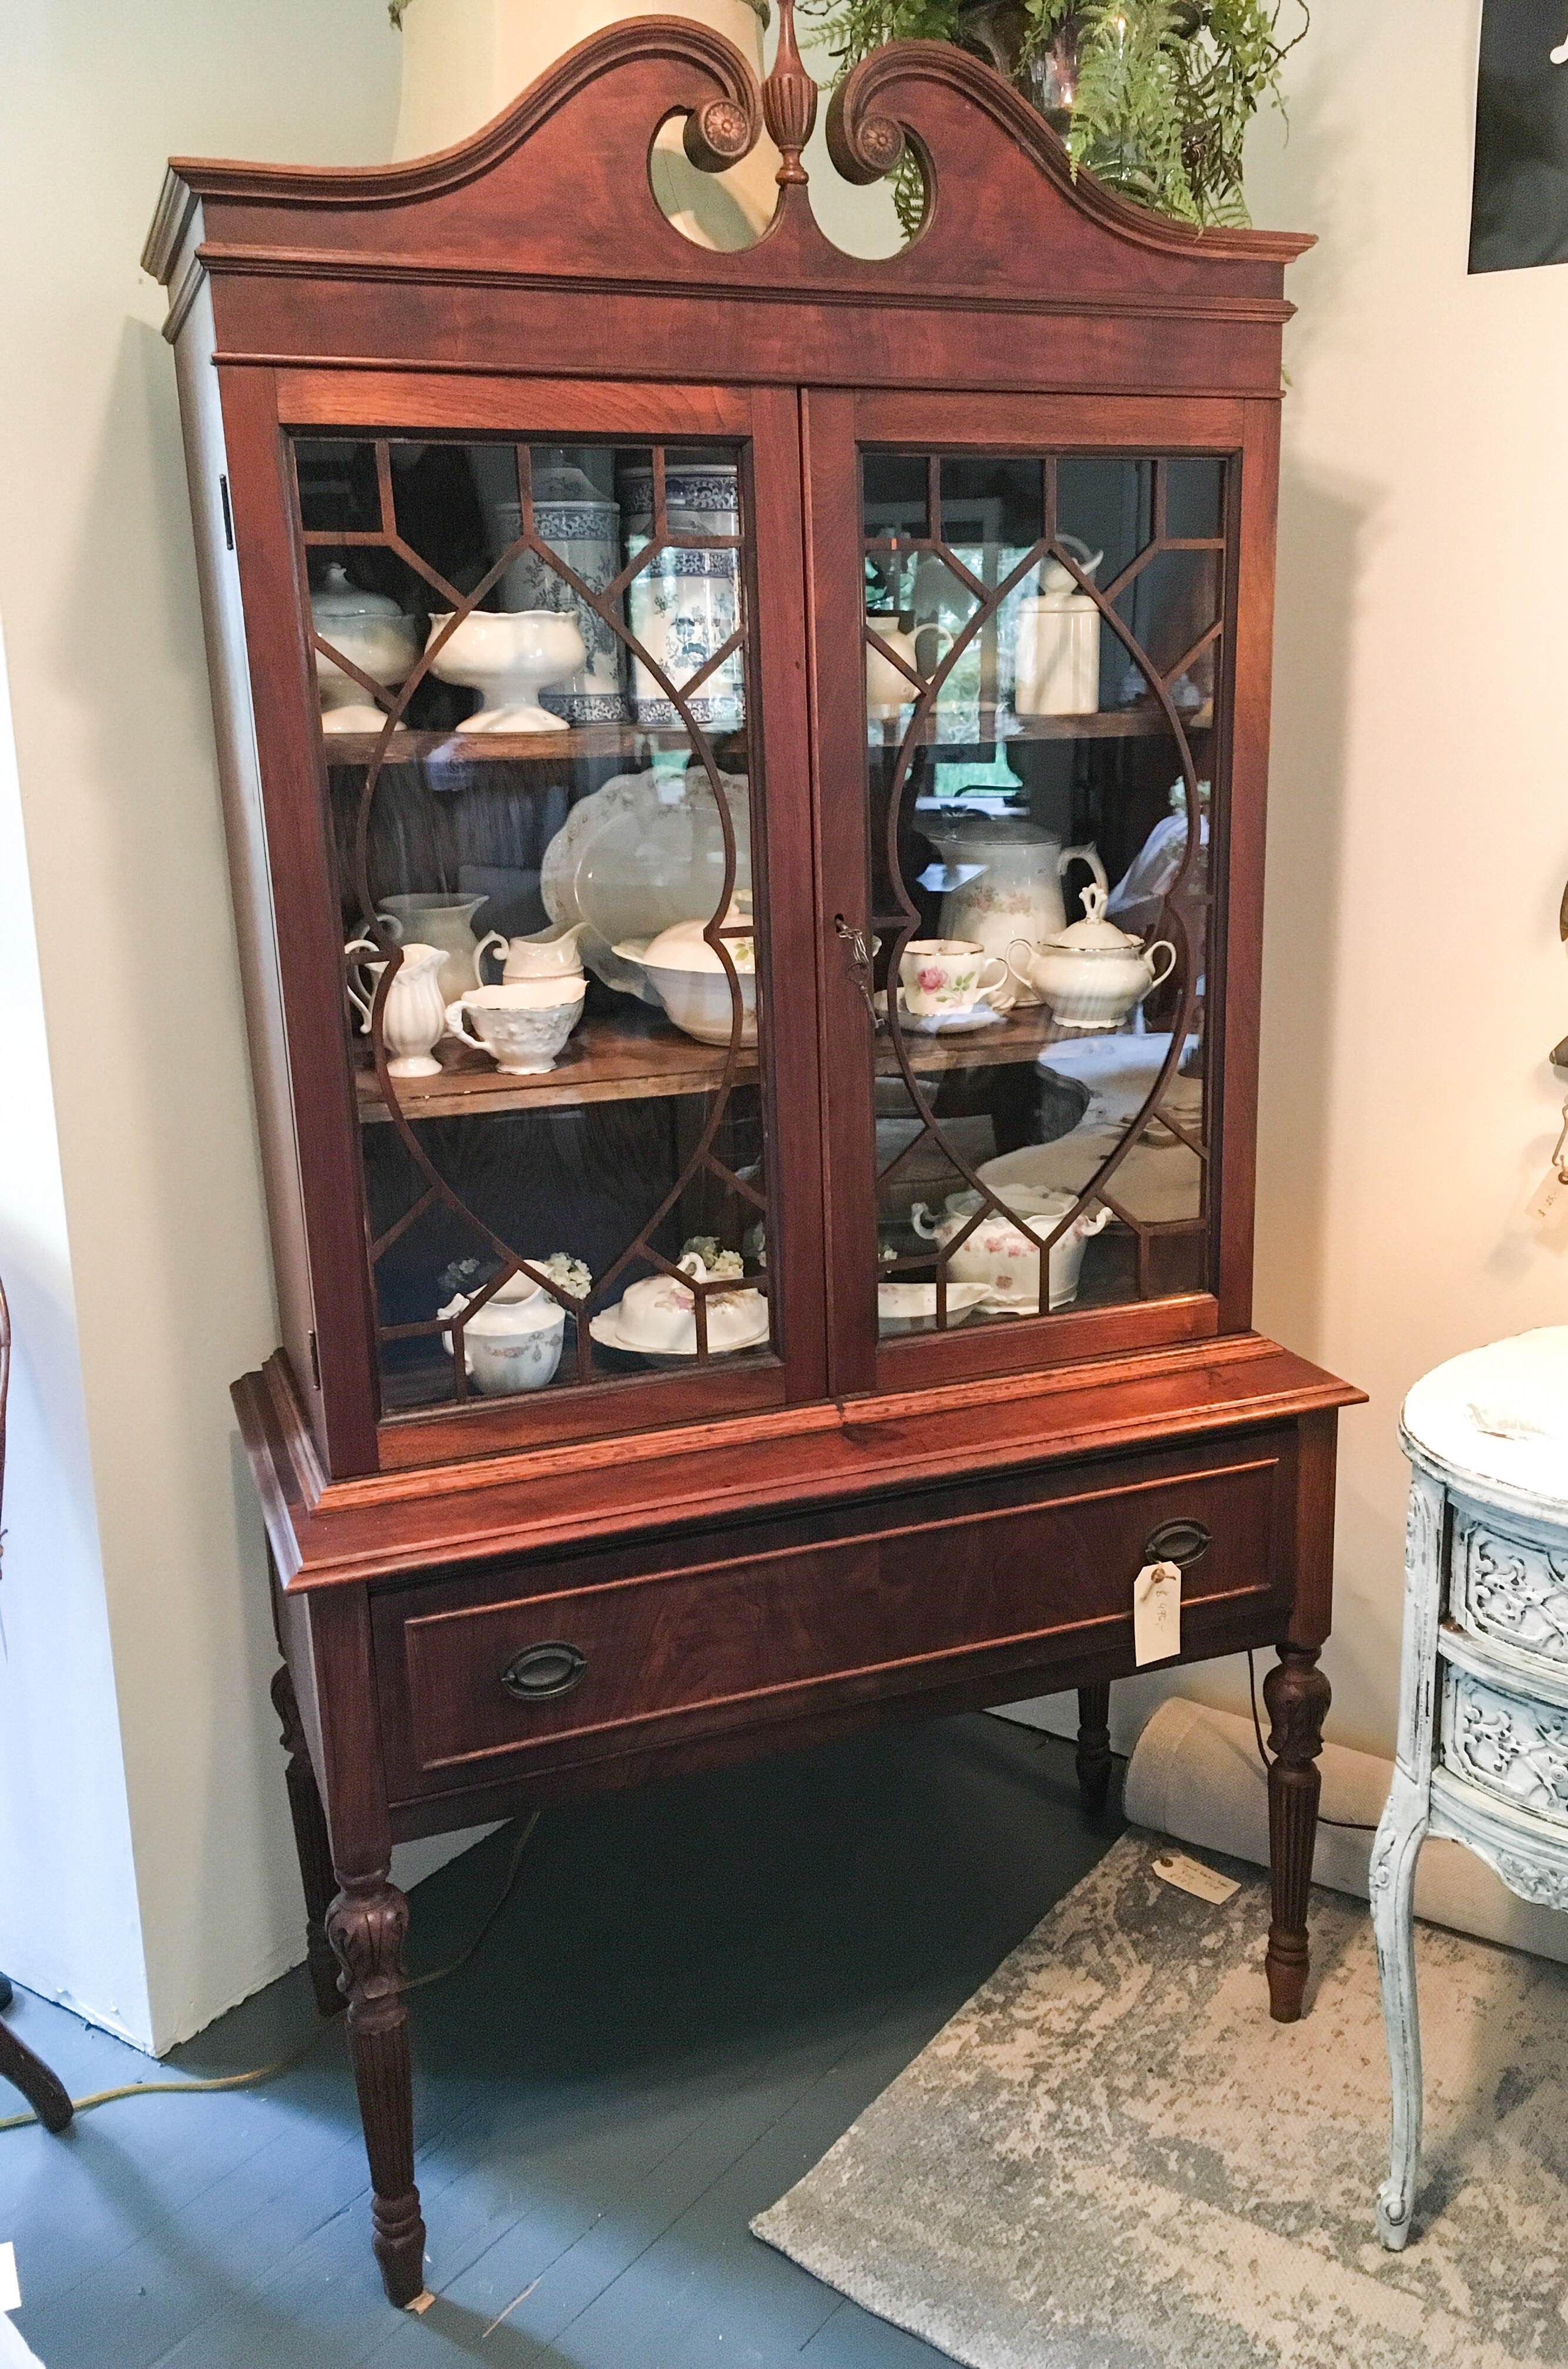 Land Haus Antiques Has A Great Blend Of Rustic And Fine Furniture Pieces.  One Of The More Elegant Pieces Is Certainly This Federal Style China  Cabinet.